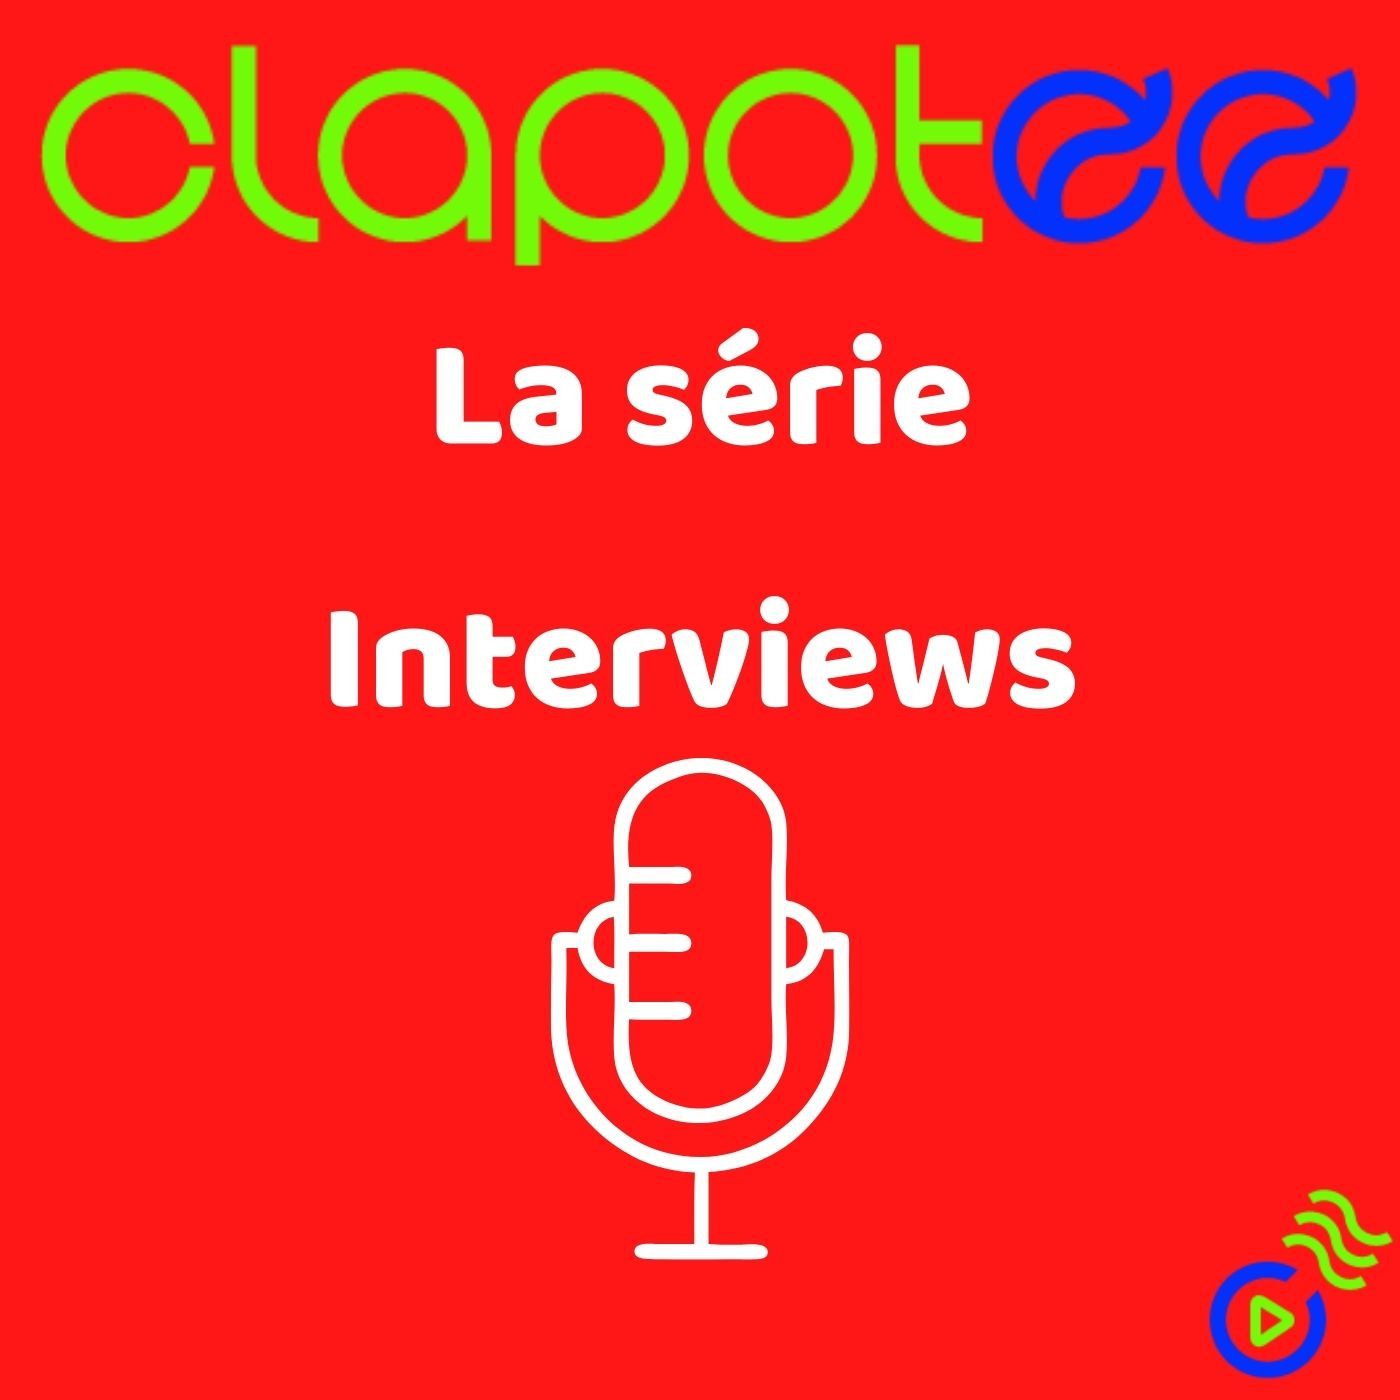 FRANÇAIS - Interviews